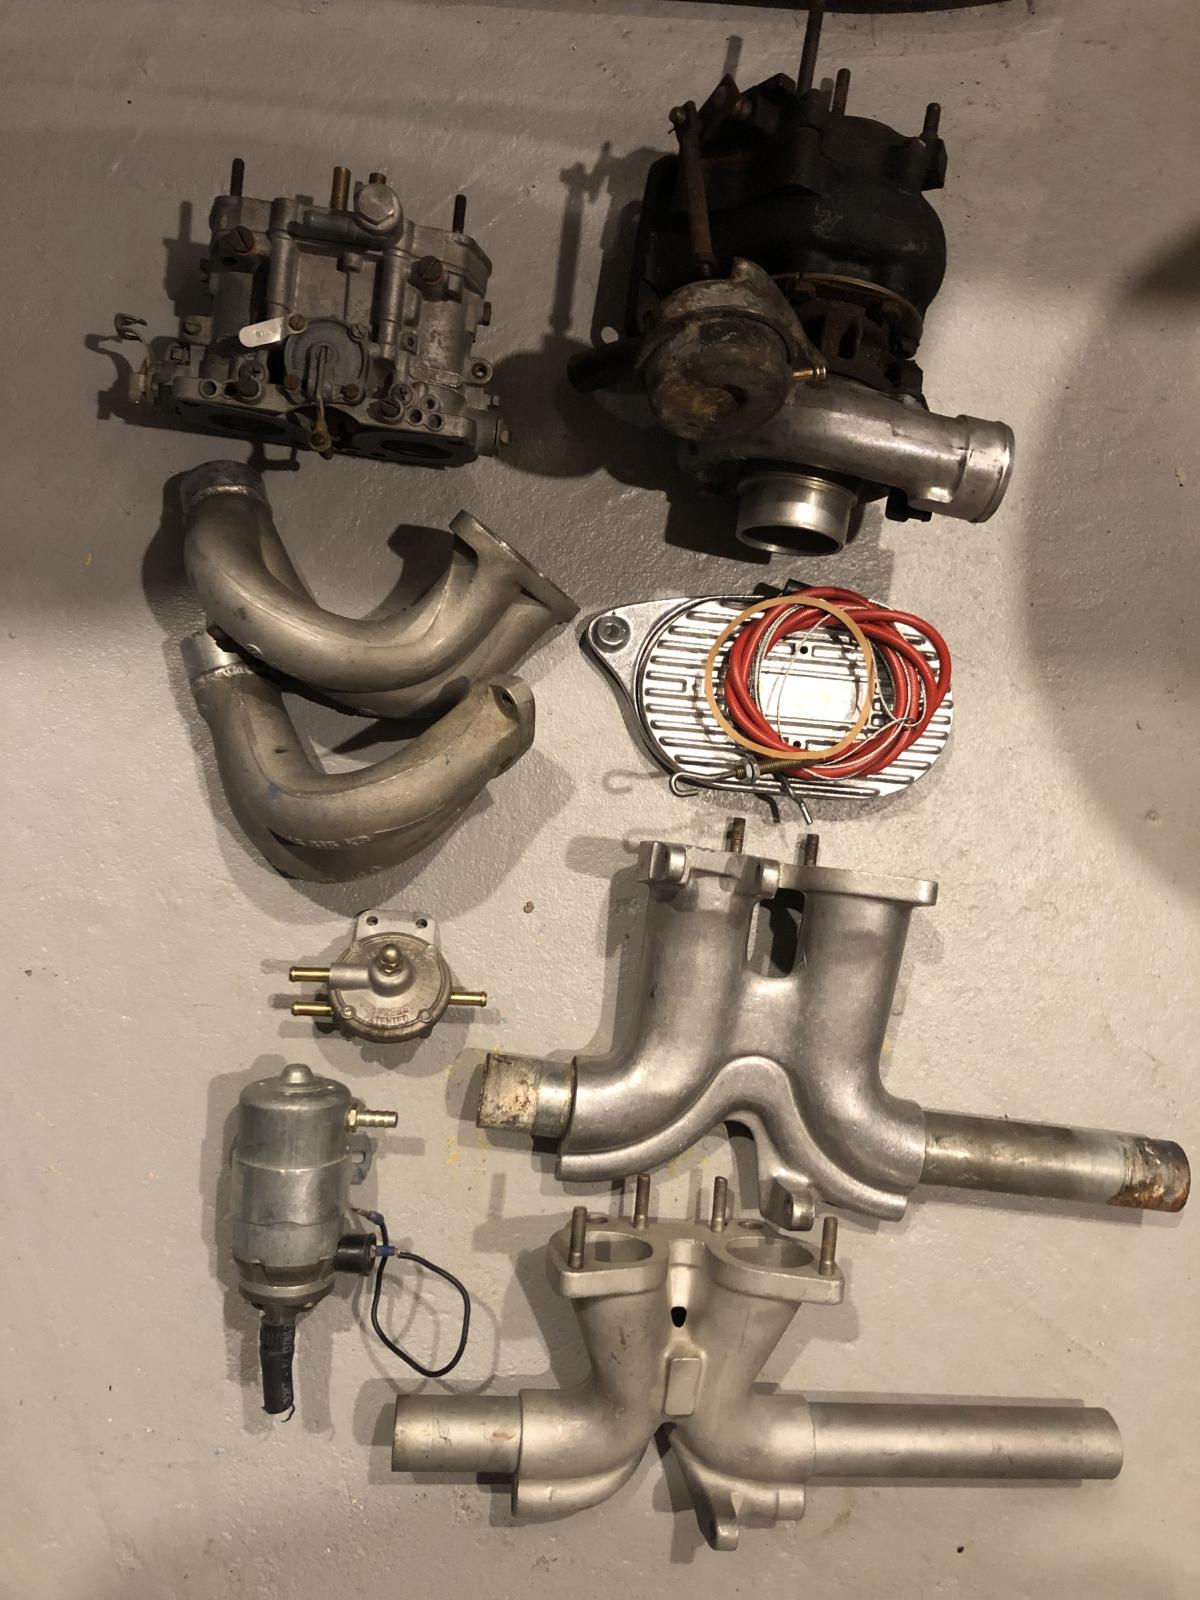 Turbo parts collecting